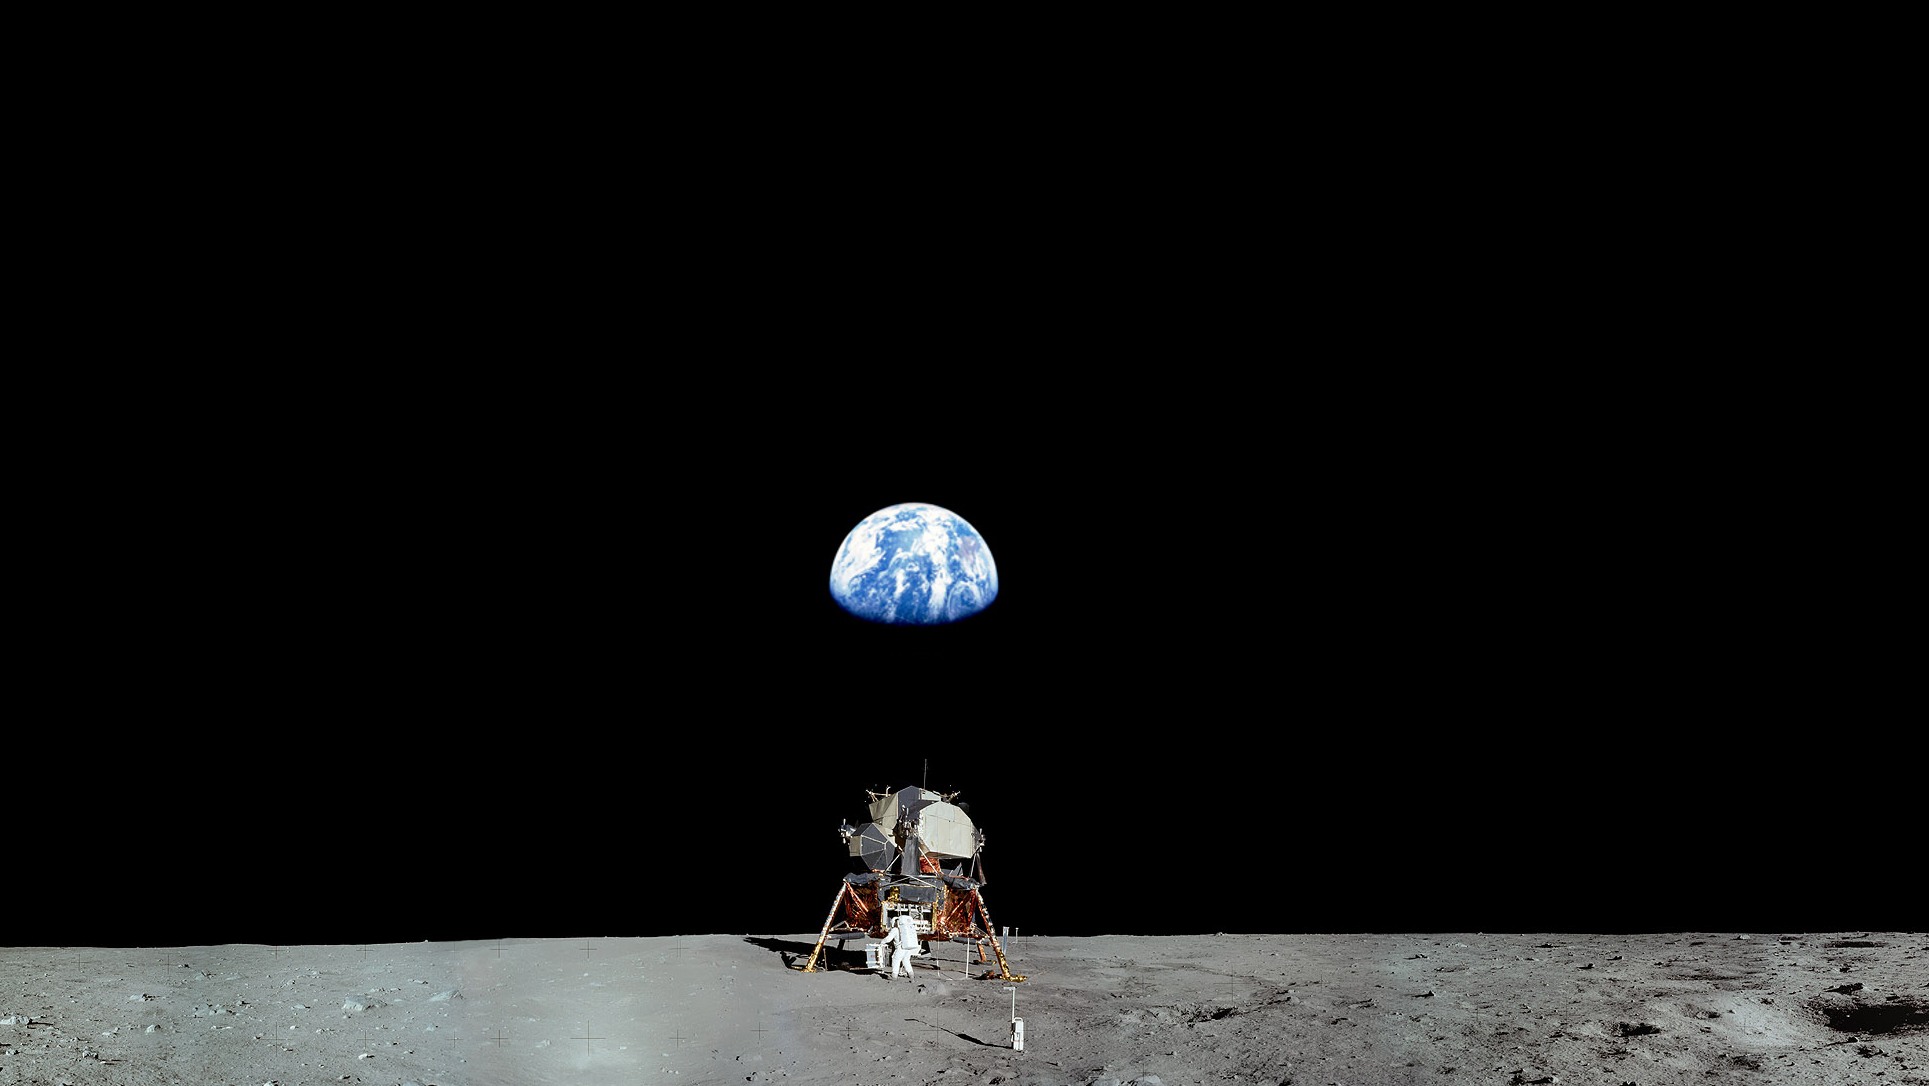 astronaut on moon earth background - photo #1